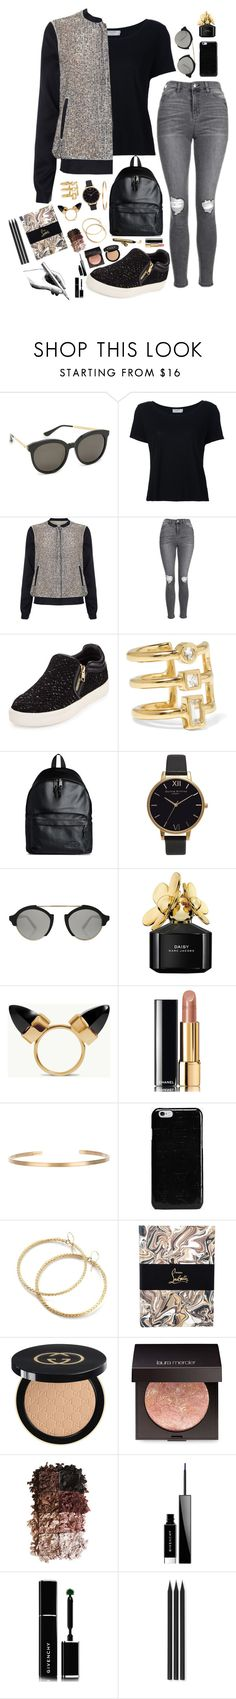 """Untitled #1449"" by style-and-chic-boutique ❤ liked on Polyvore featuring Gentle Monster, Frame Denim, Phase Eight, Topshop, Ash, Elizabeth and James, Eastpak, Olivia Burton, Illesteva and Marc Jacobs"